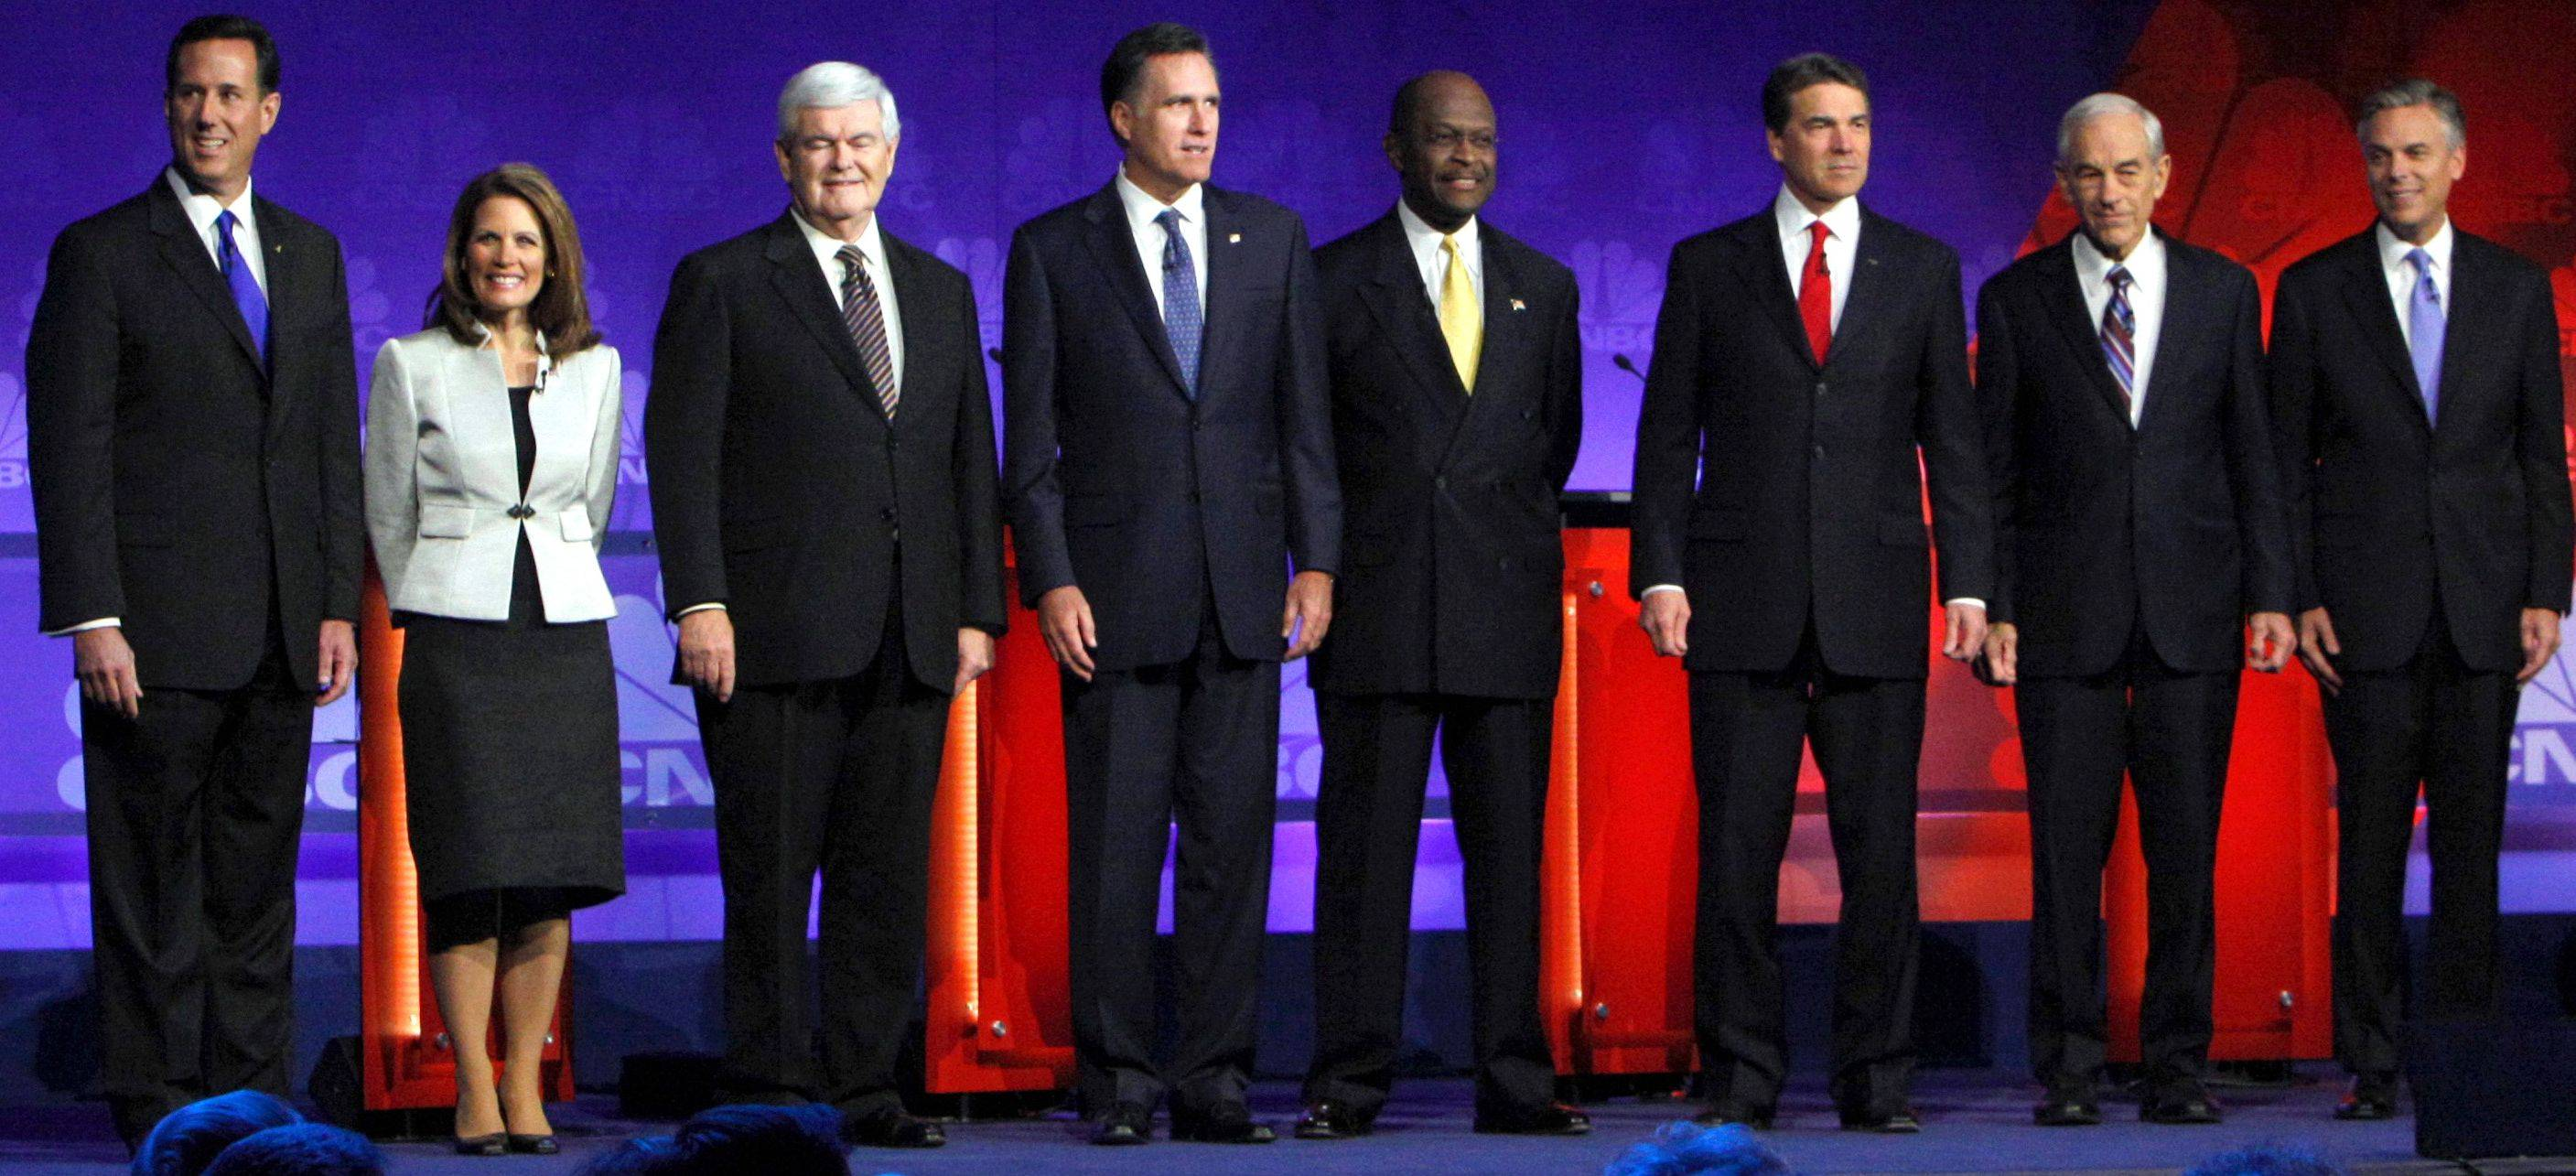 Candidates former Pennsylvania Sen. Rick Santorum, left, Rep. Michele Bachmann of Minnesota, former House Speaker Newt Gingrich, former Massachusetts Gov. Mitt Romney, businessman Herman Cain, Texas Gov. Rick Perry, Rep. Ron Paul of Texas and former Utah Gov. Jon Huntsman pose before a Republican presidential debate in Auburn Hills, Mich., Wednesday.